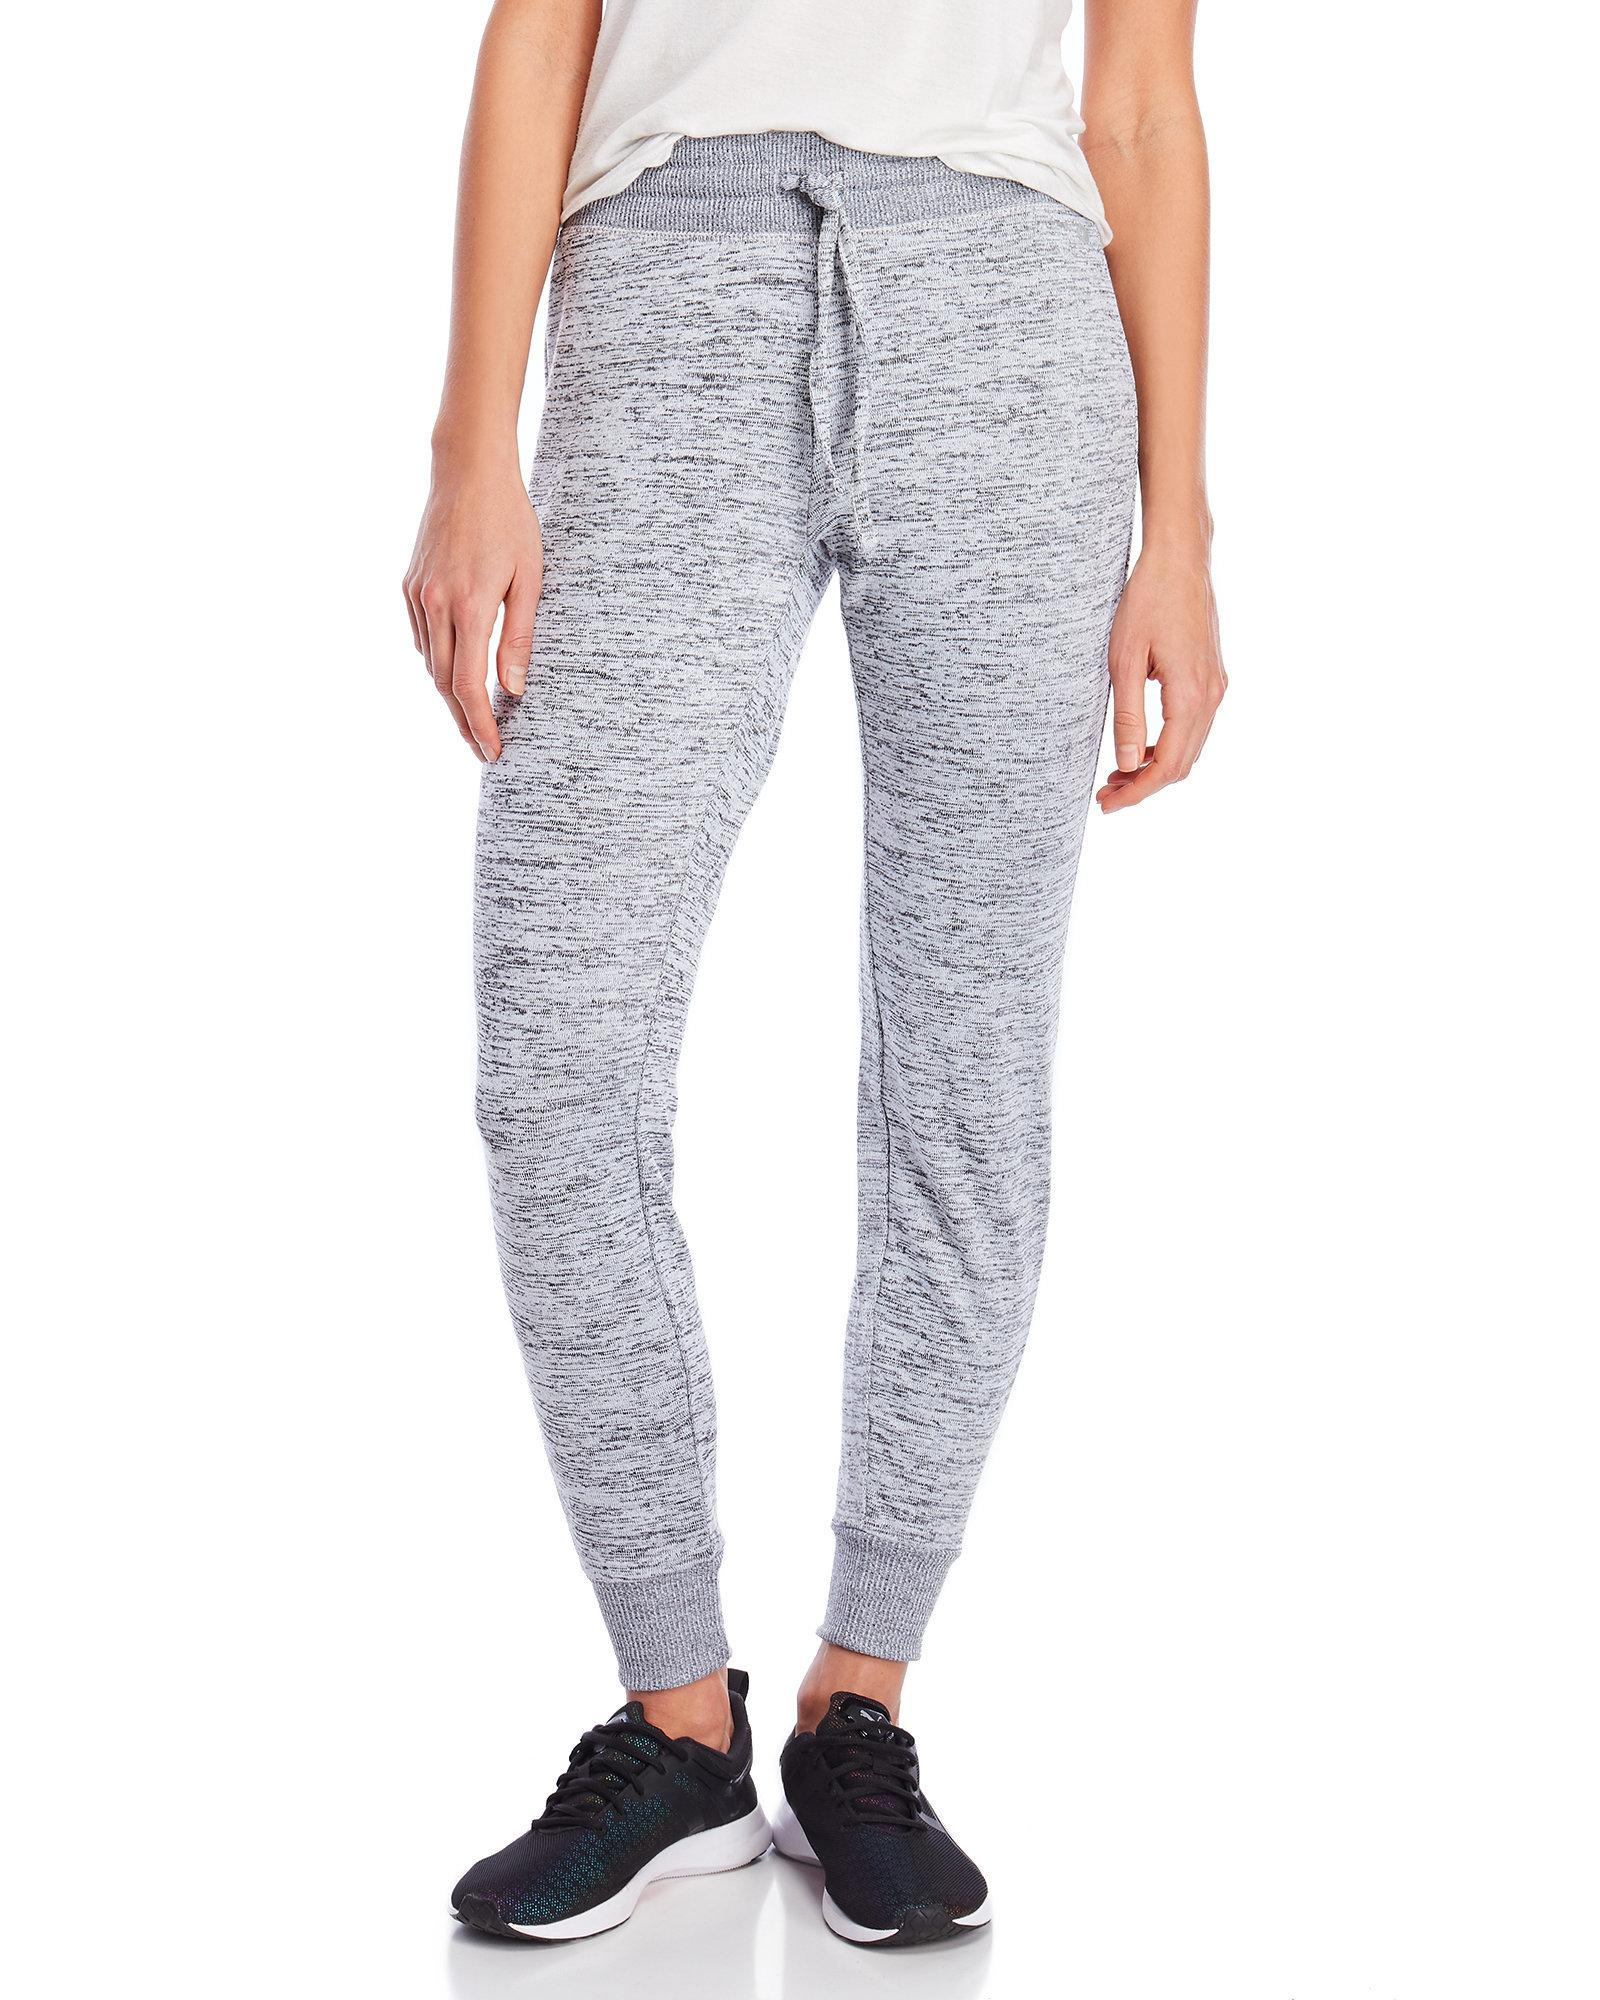 dfd00be1ed0aa9 90 Degree By Reflex 90 Degree Jogger Pants in Gray - Lyst